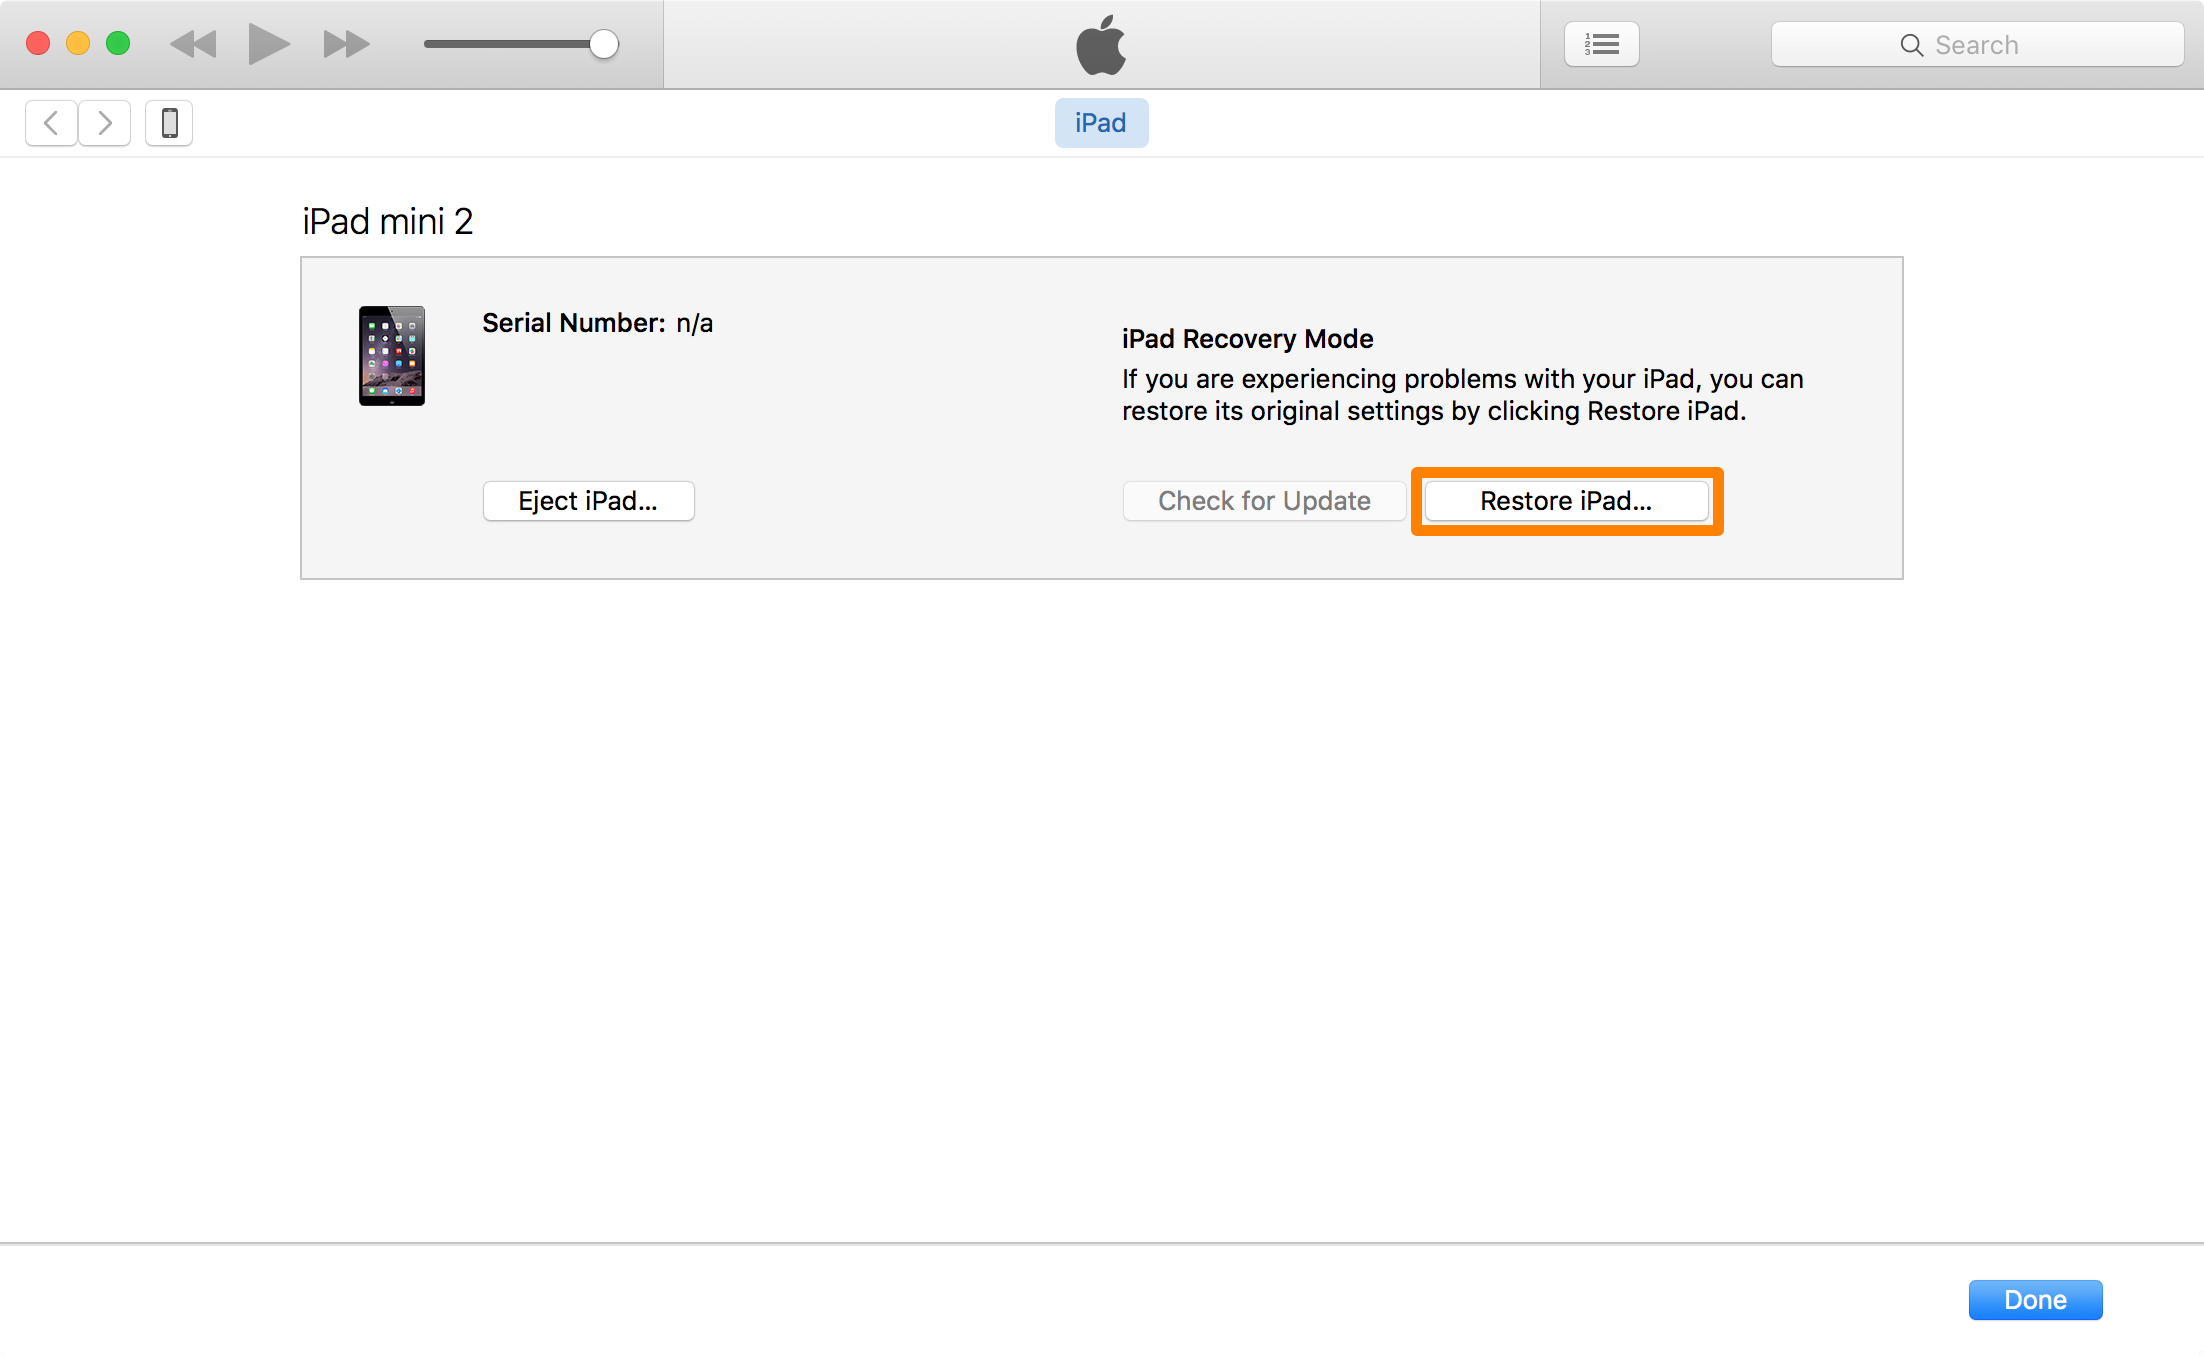 Restore iPad Prompt iTunes